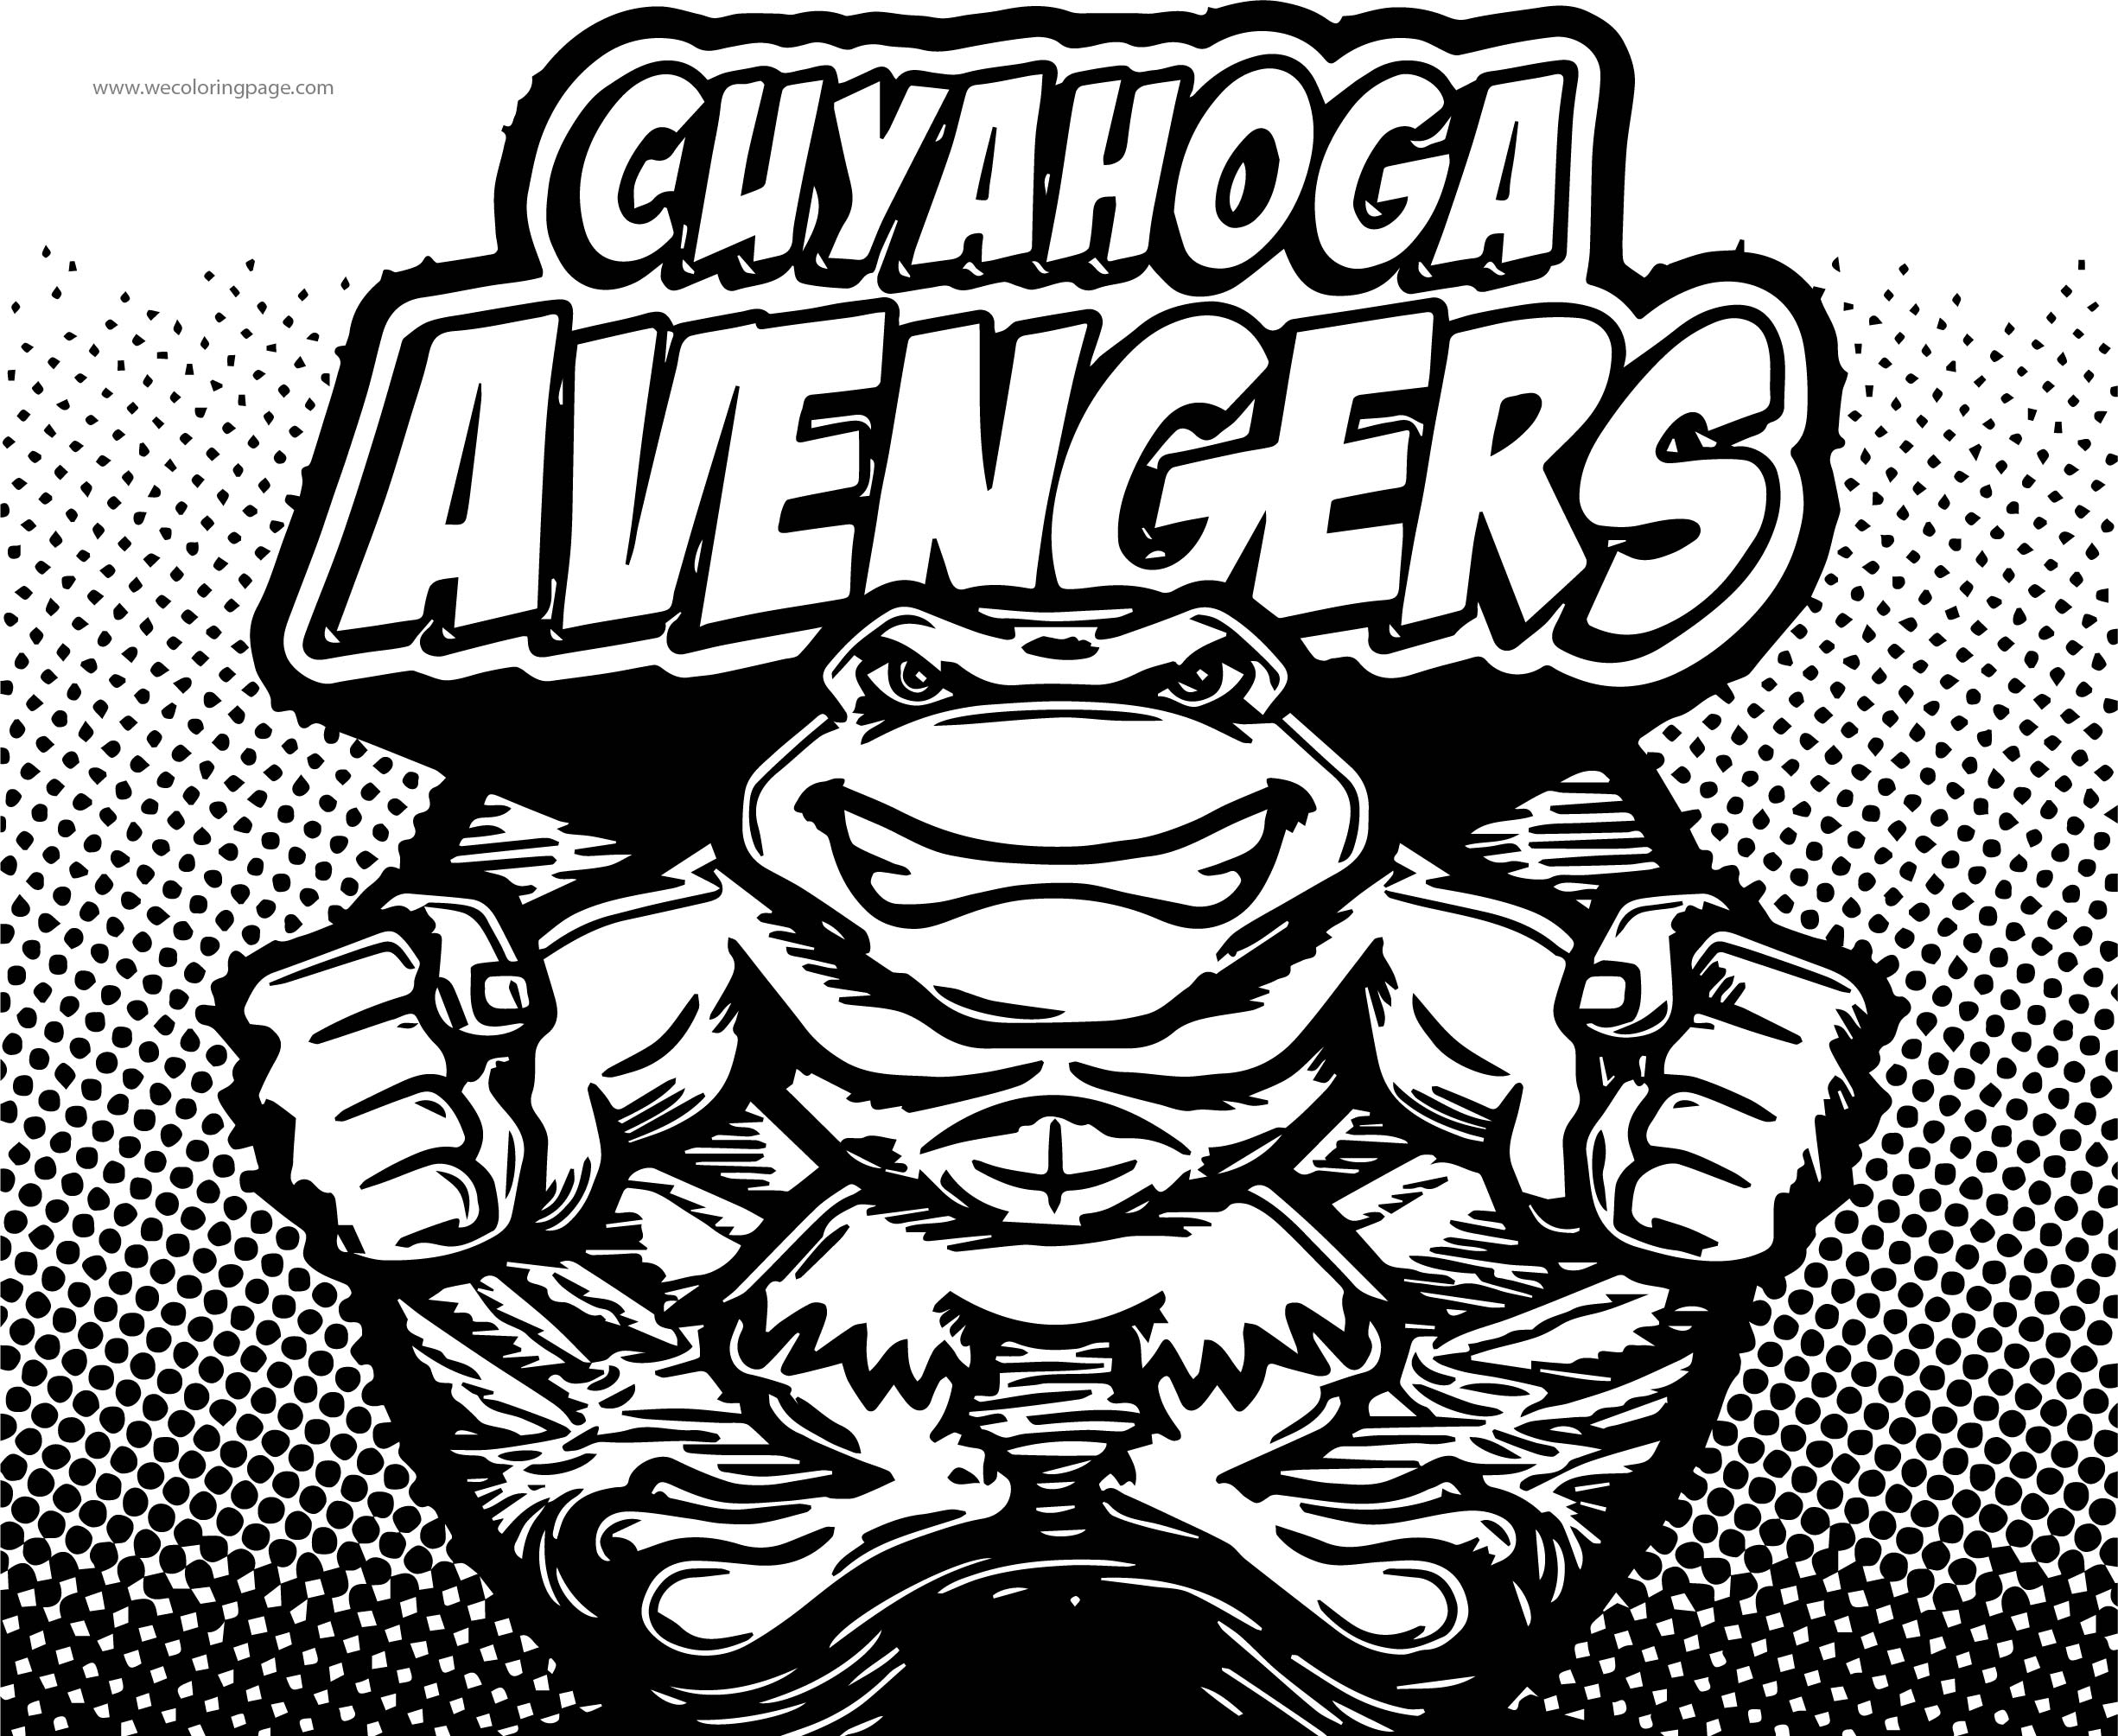 Cuyahoga Avengers Coloring Page | Wecoloringpage.com